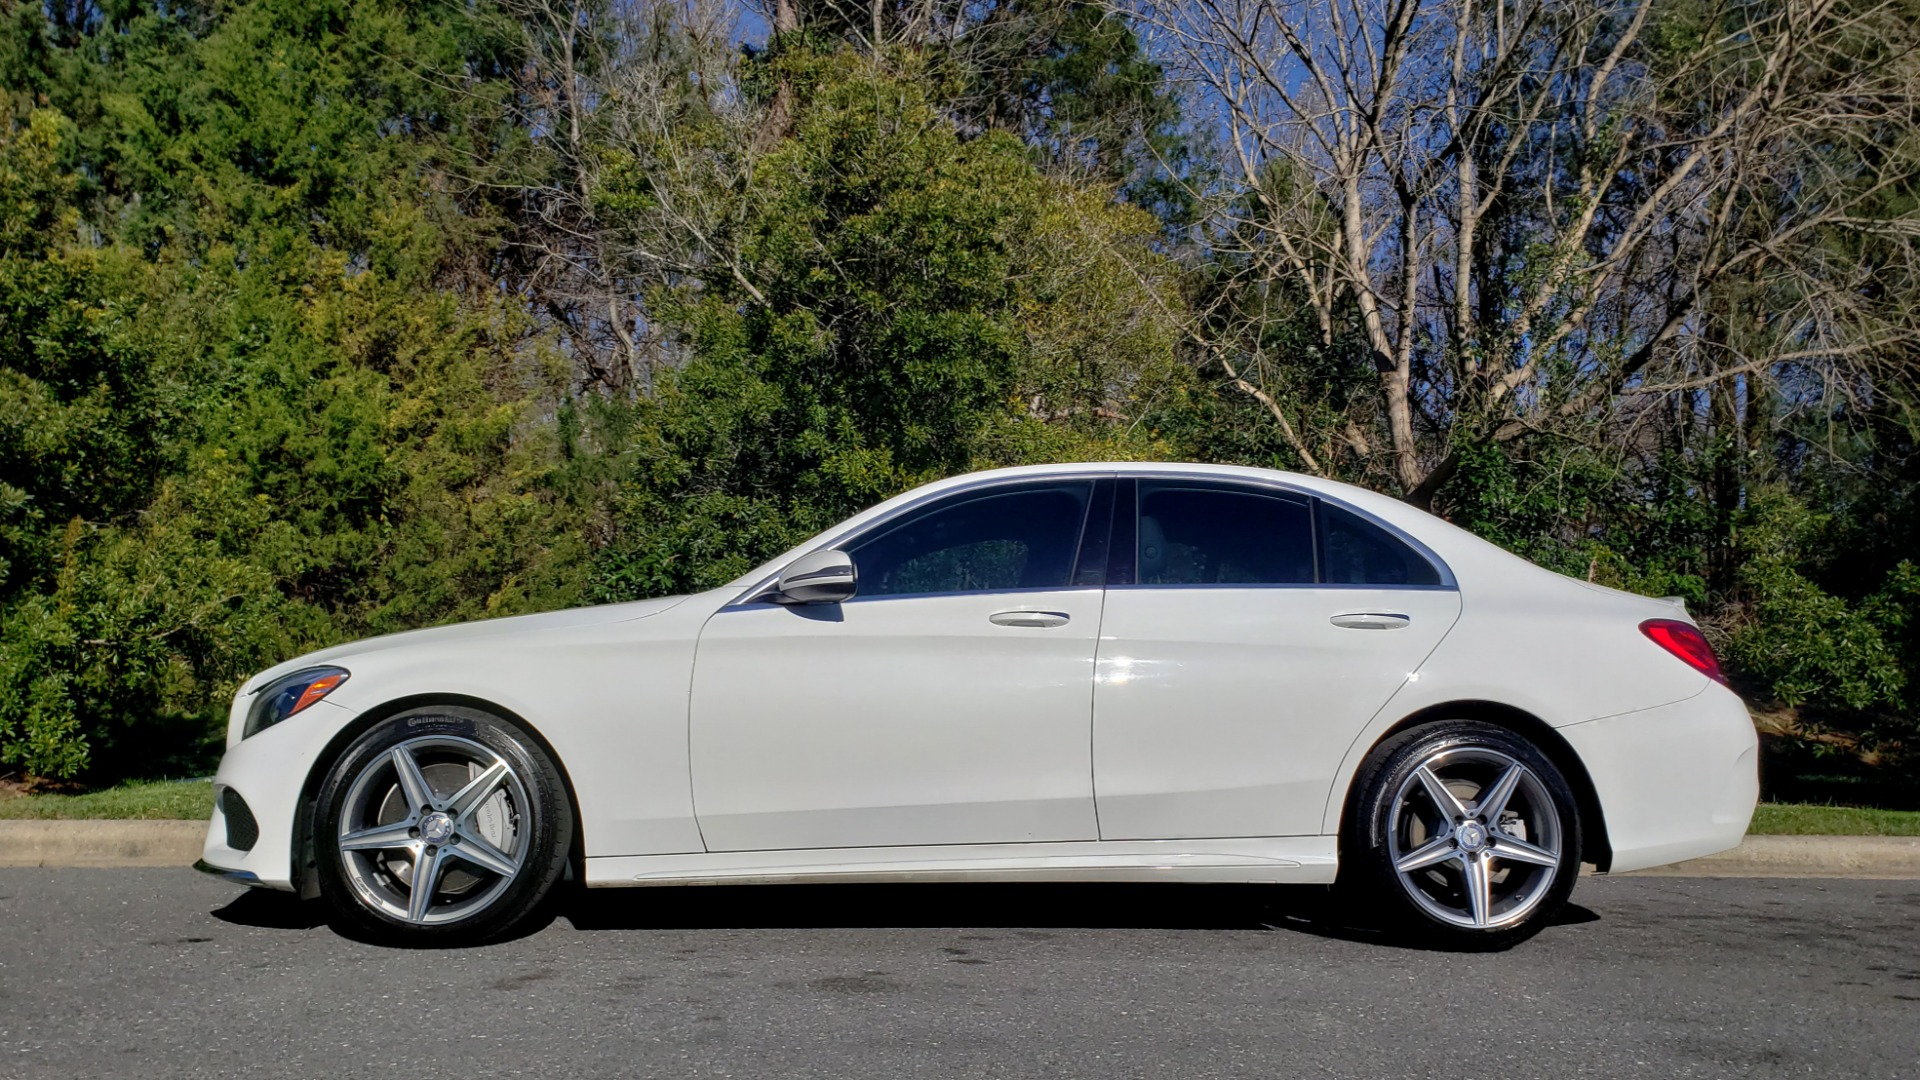 Used 2017 Mercedes-Benz C-CLASS C 300 SPORT / PREM PKG / PANO-ROOF / NAV / HTD STST / REARVIEW for sale Sold at Formula Imports in Charlotte NC 28227 2